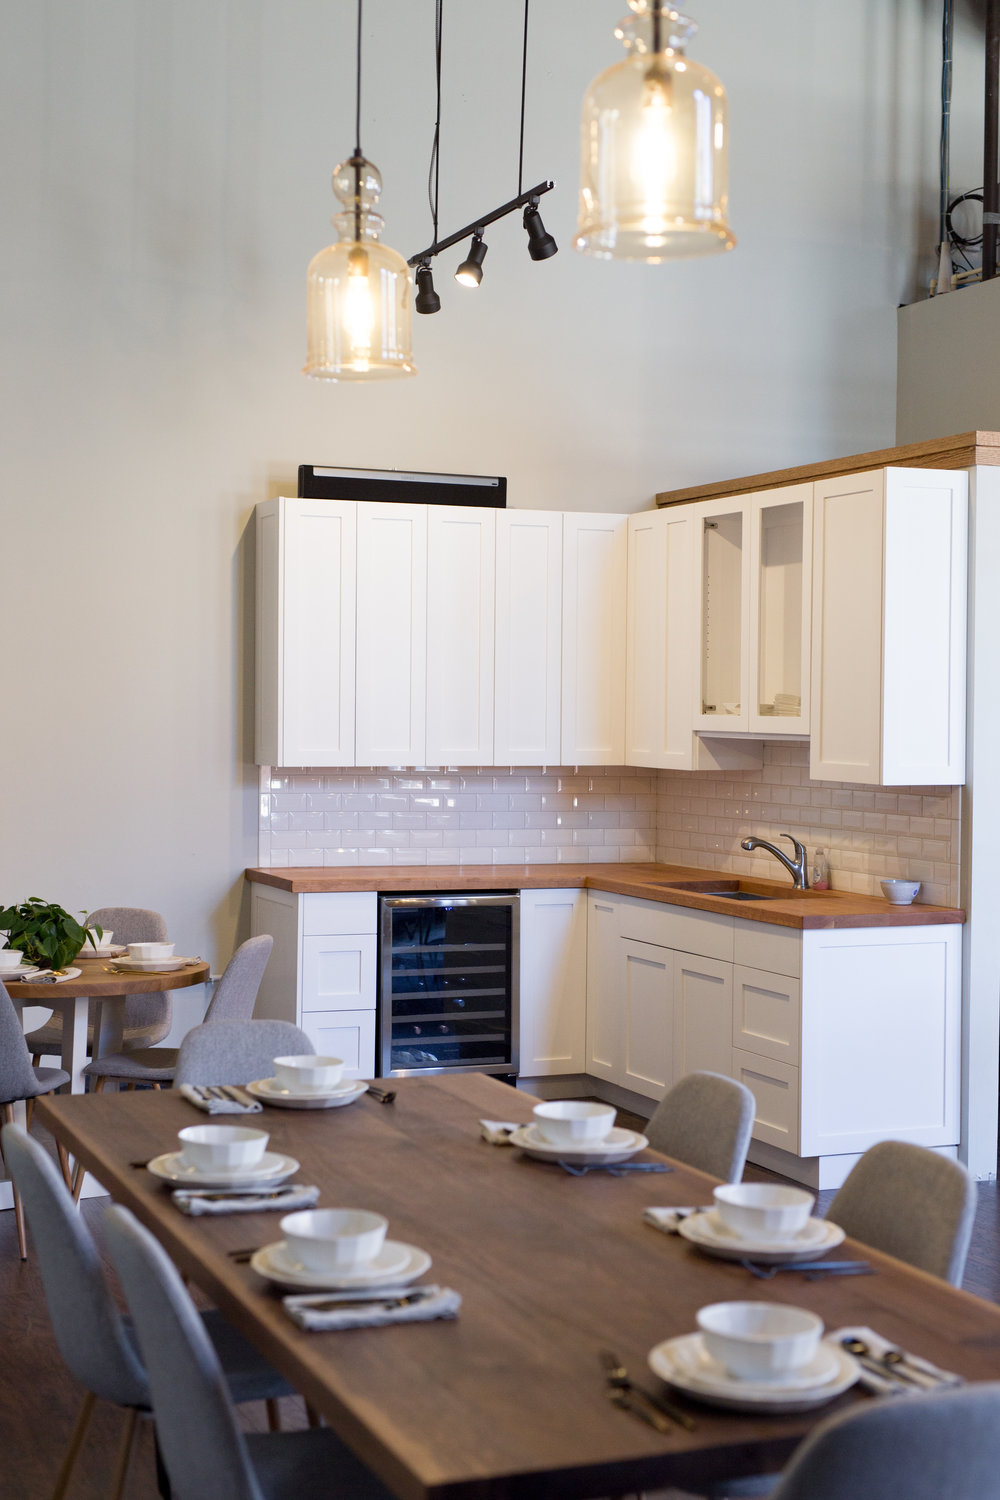 Kitchen Cabinetry By Sunnyside Millwork